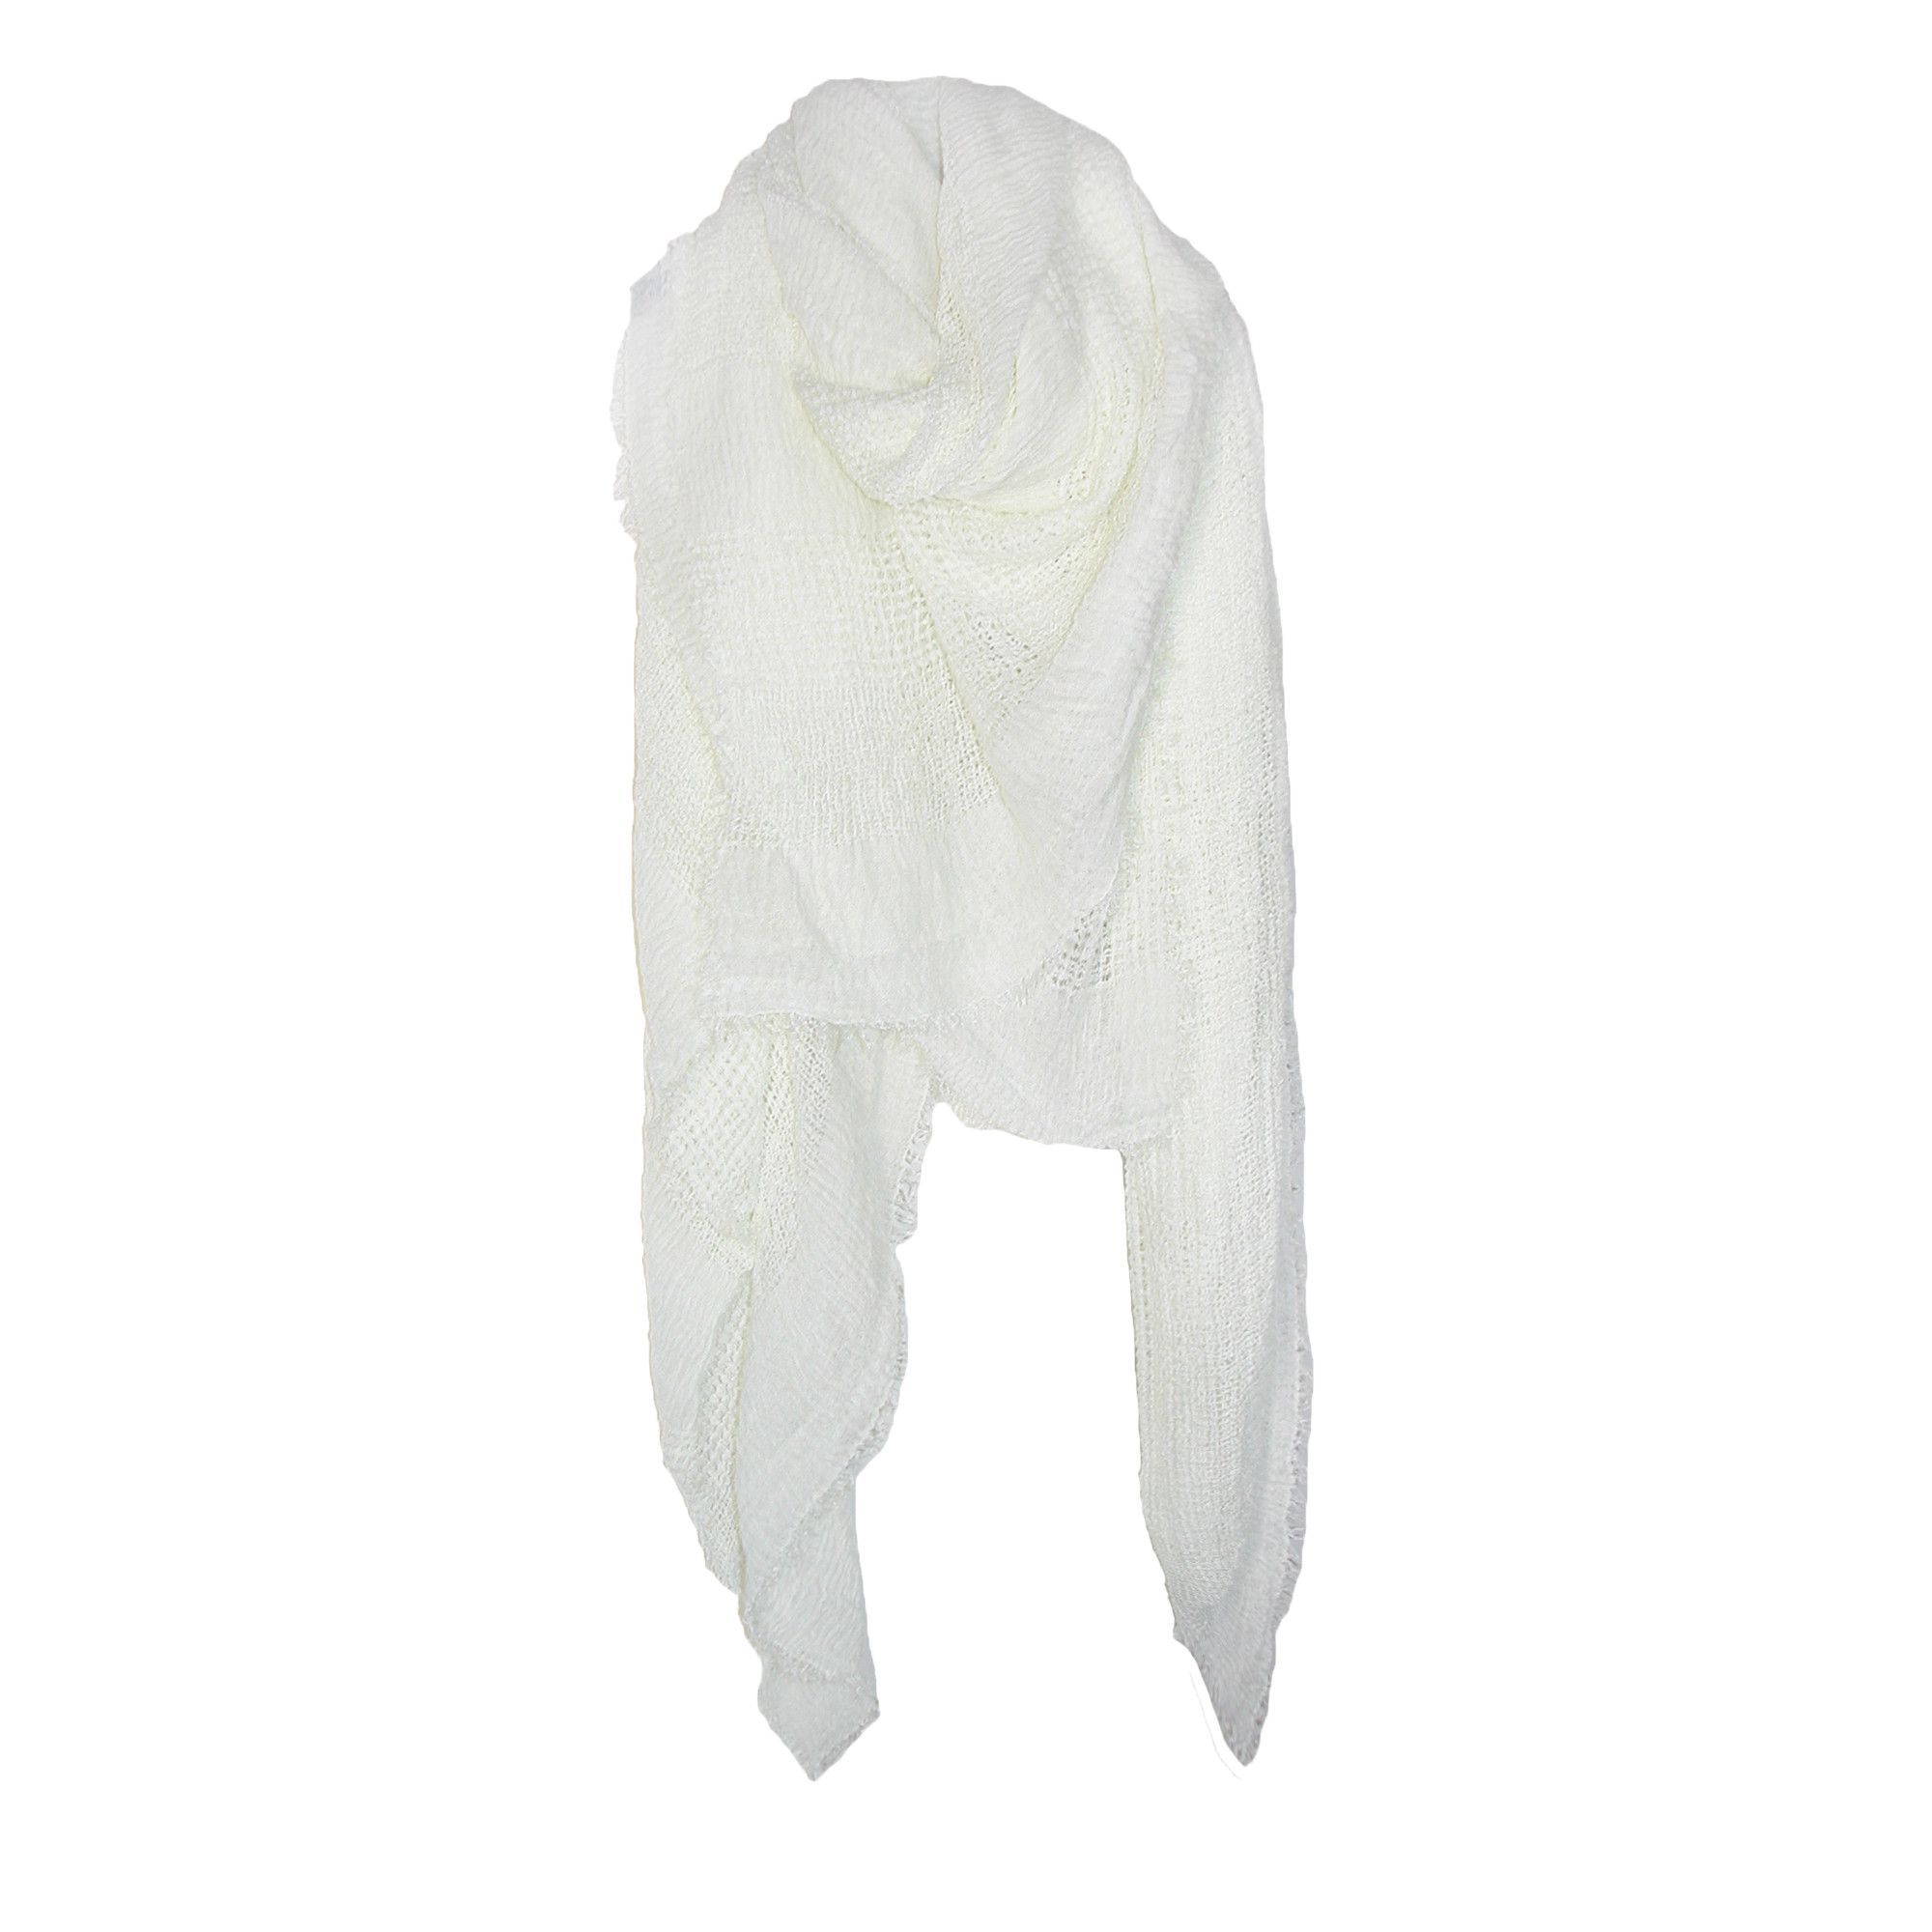 CTM Women's Solid Color Lightweight Mesh Wrap Scarf